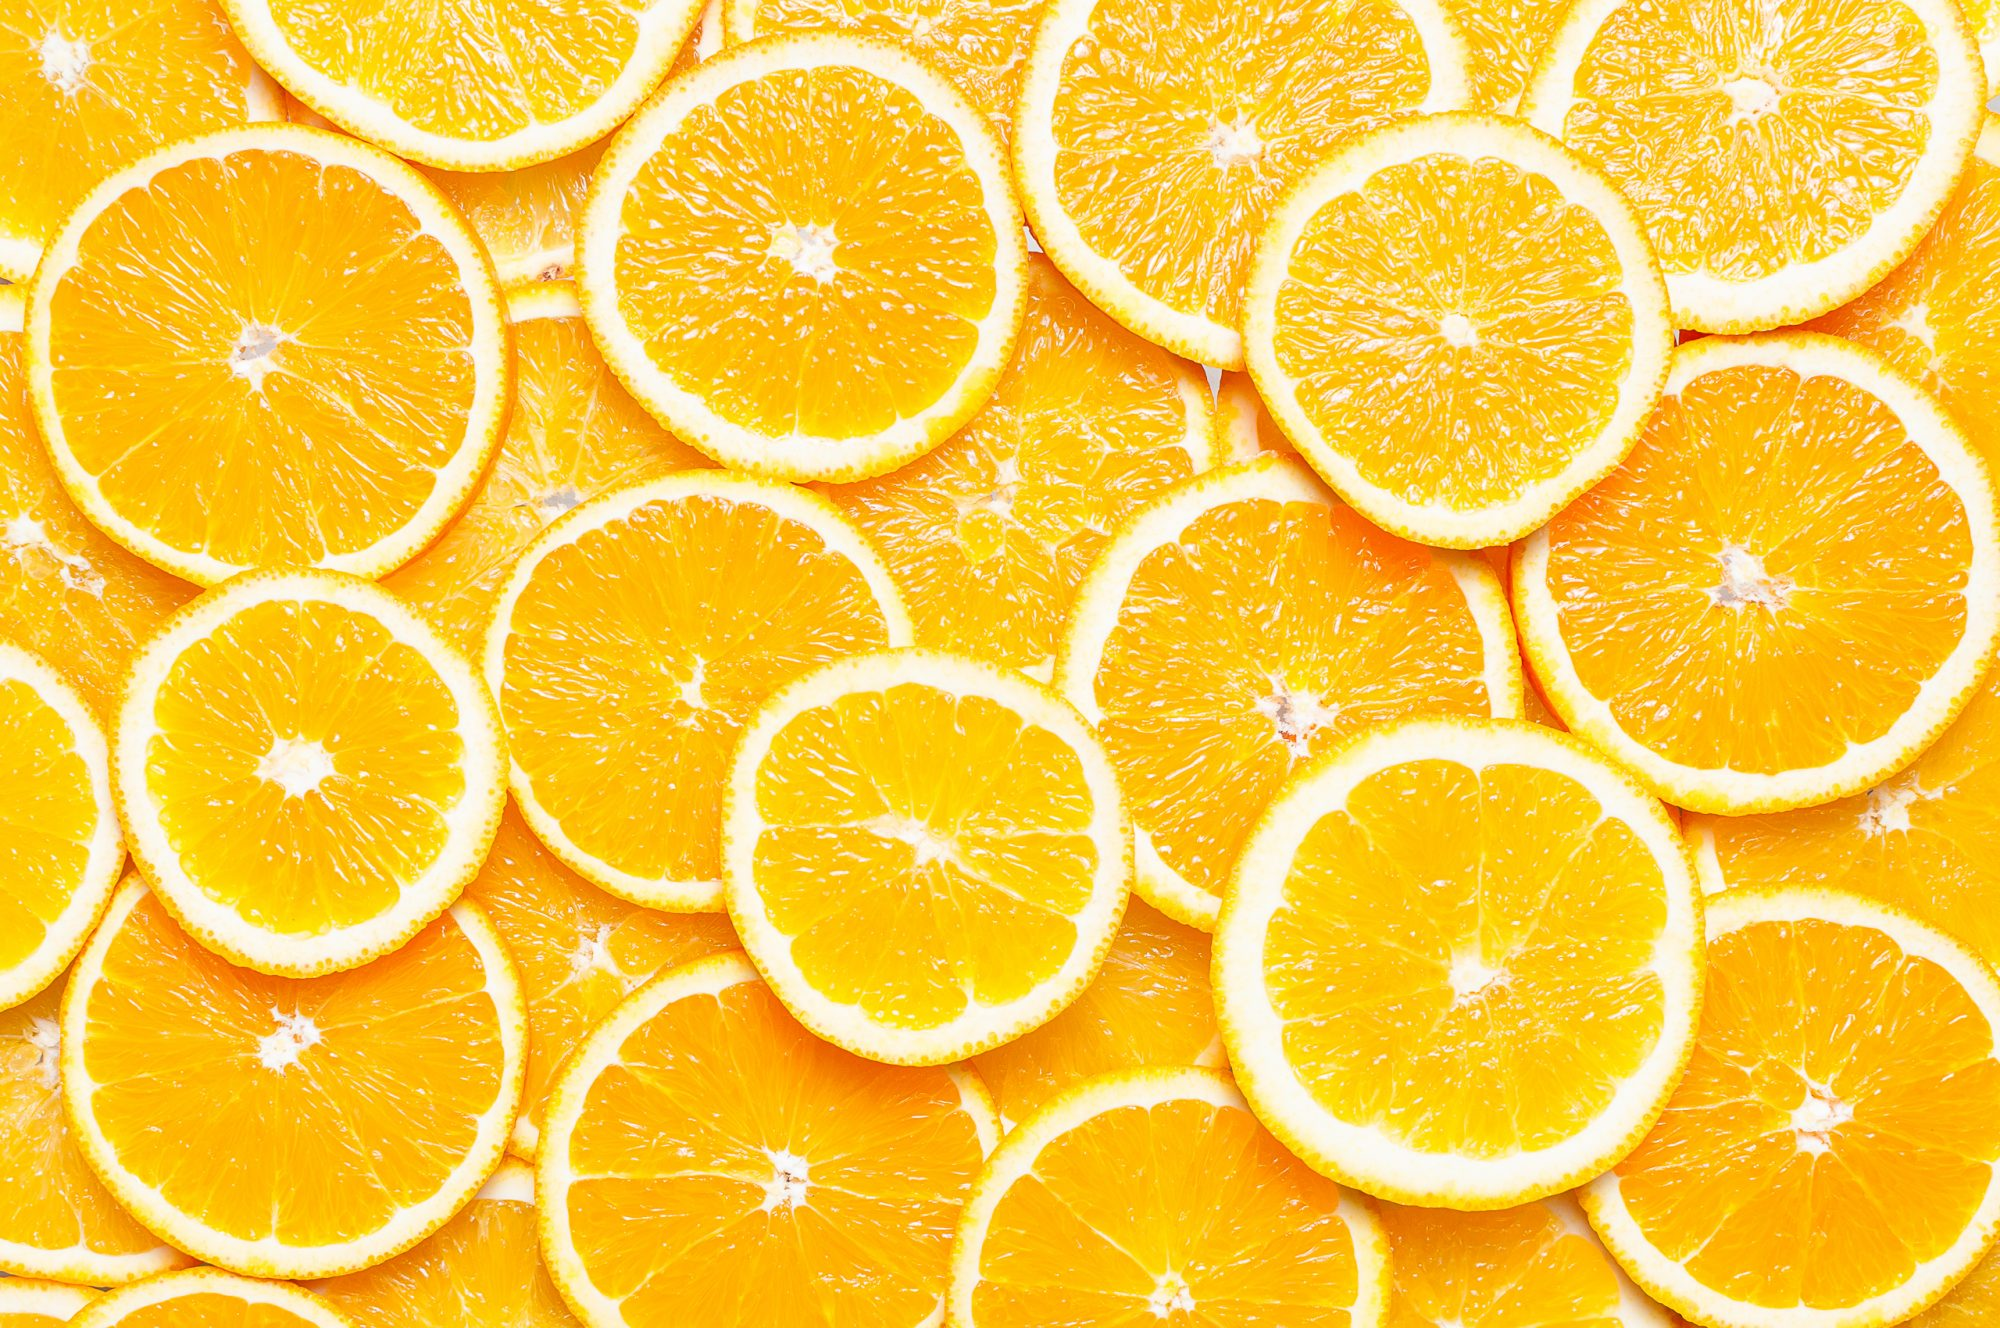 Oranges Getty 1/21/20